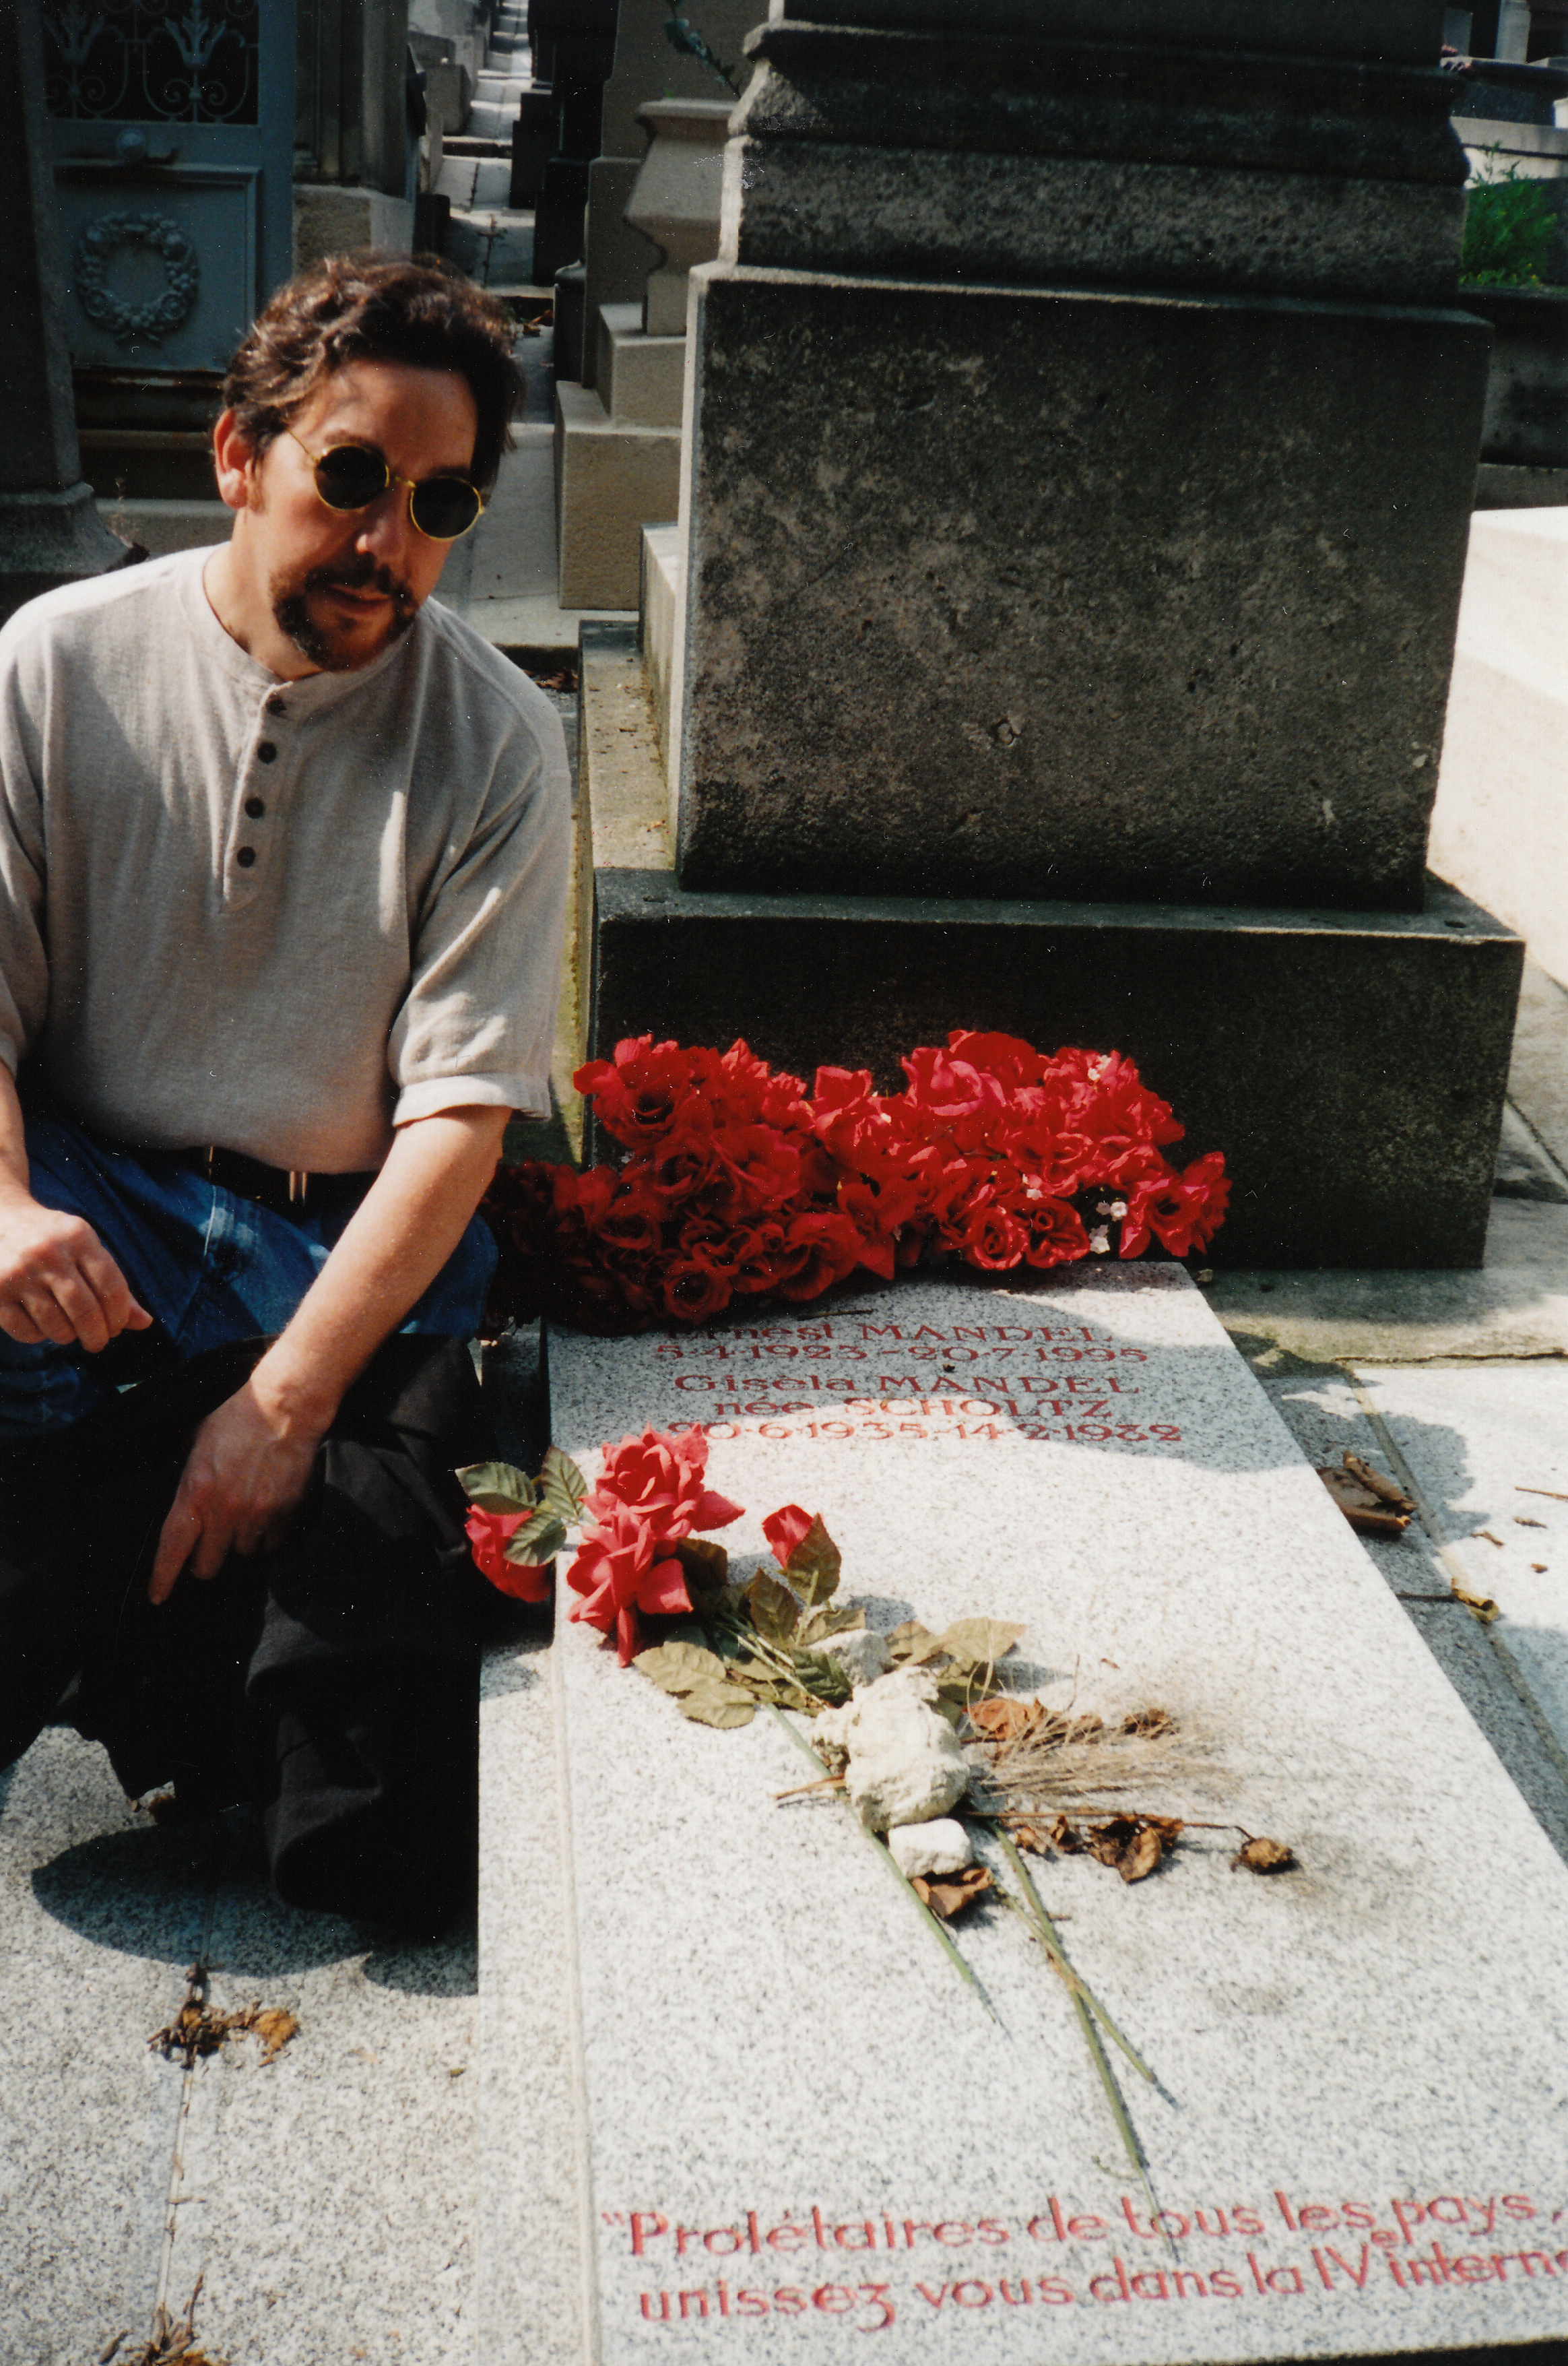 Figure 20.8. Alan at the grave of Ernest Mandel, Pere-Lachaise Cemetery, Paris, July 1997. Credit: Personal collection of Alan M. Wald.